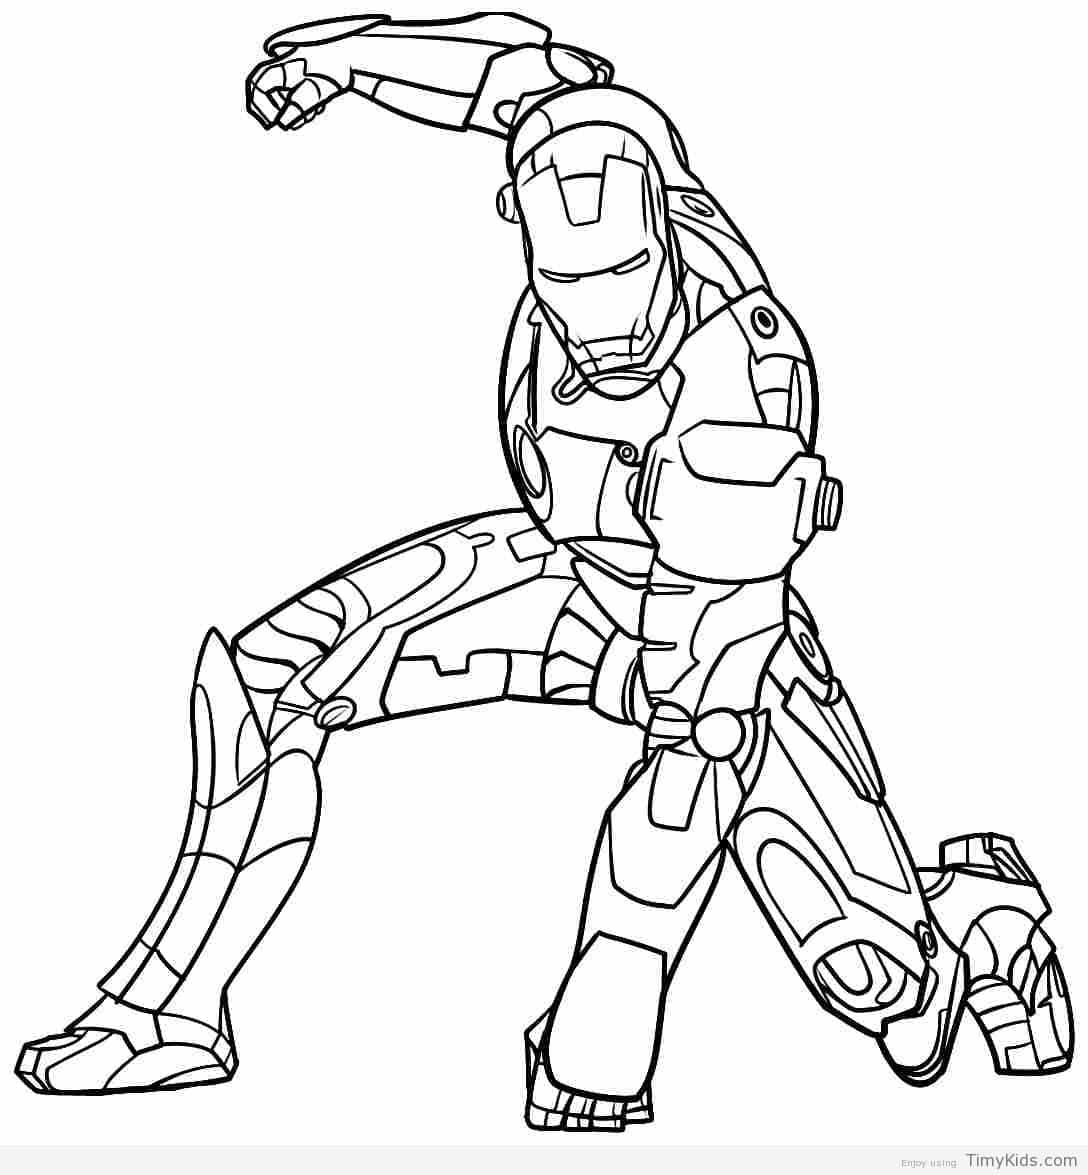 ironman images to color free printable iron man coloring pages for kids color images to ironman